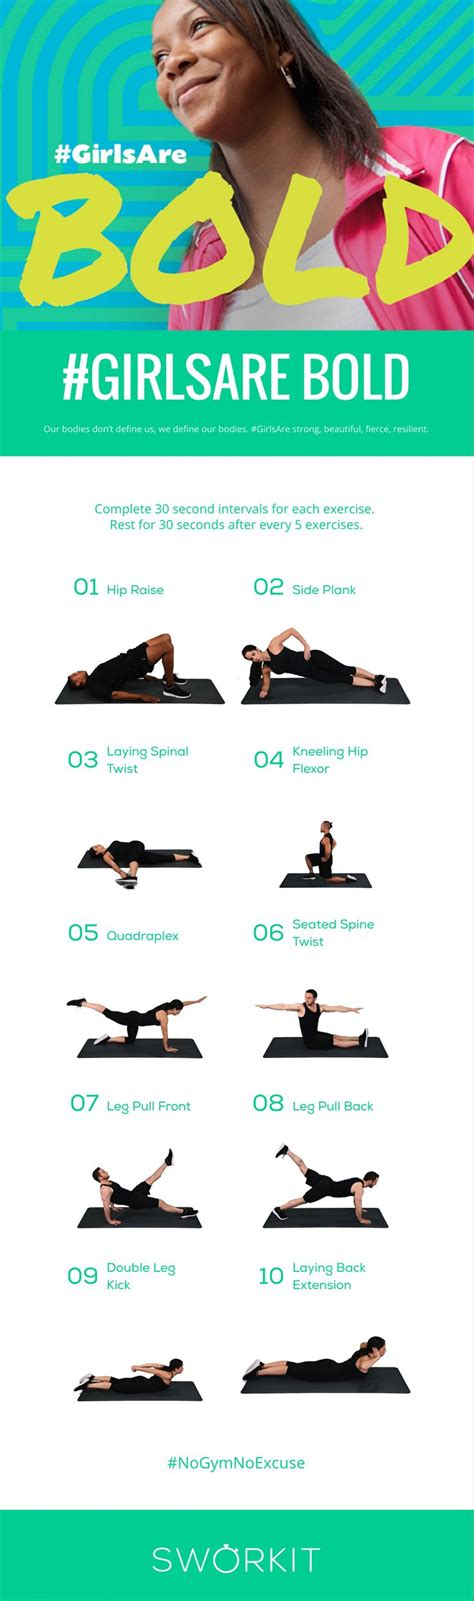 16 best images about workouts at home workouts on